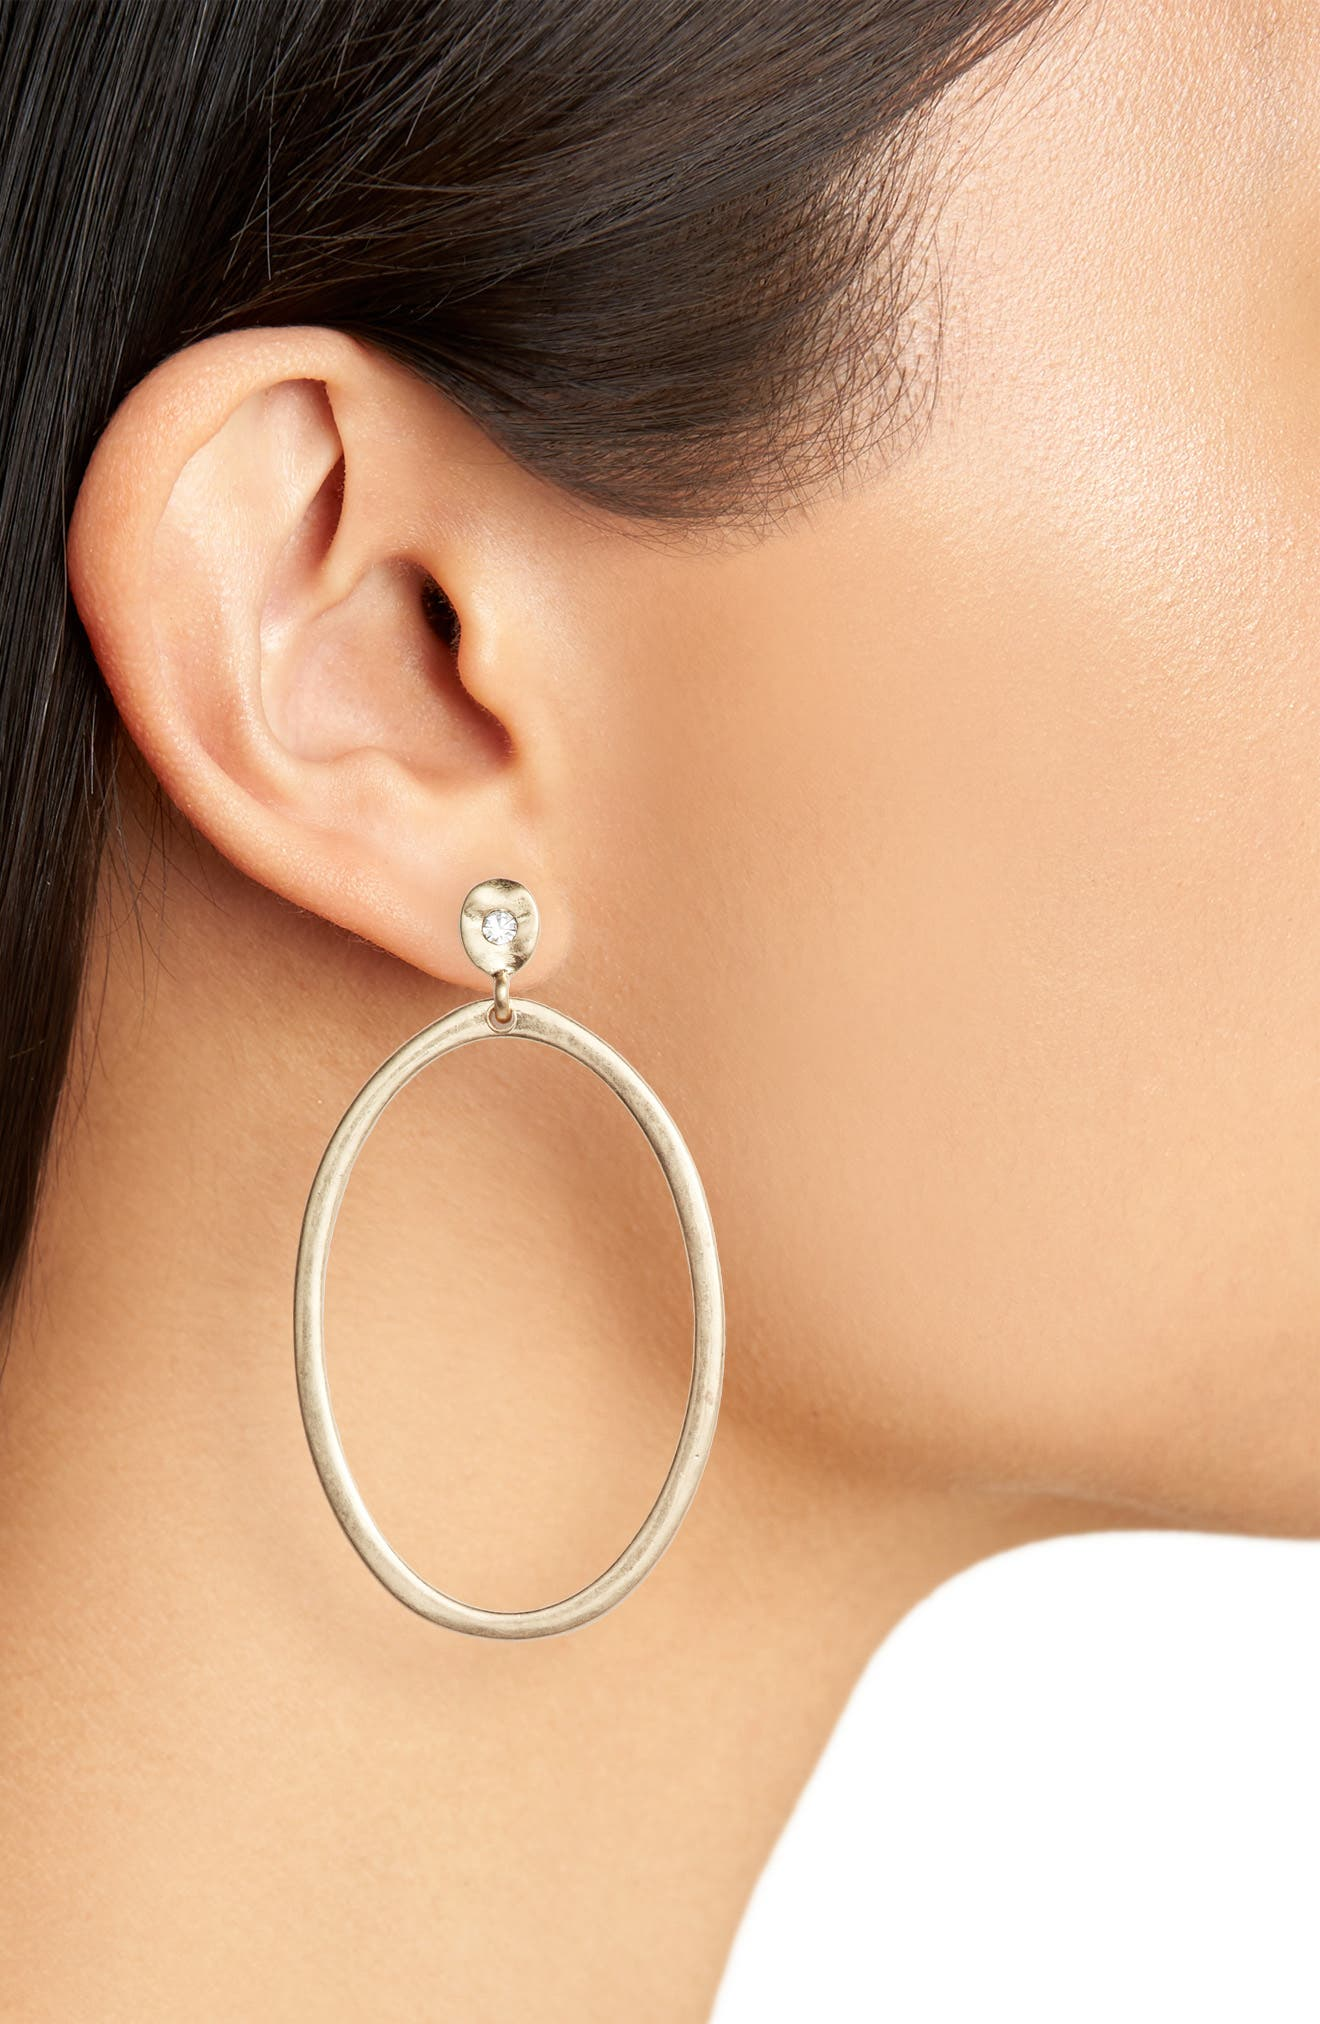 Organic Oval Hoop Earrings,                             Alternate thumbnail 2, color,                             Clear- Gold